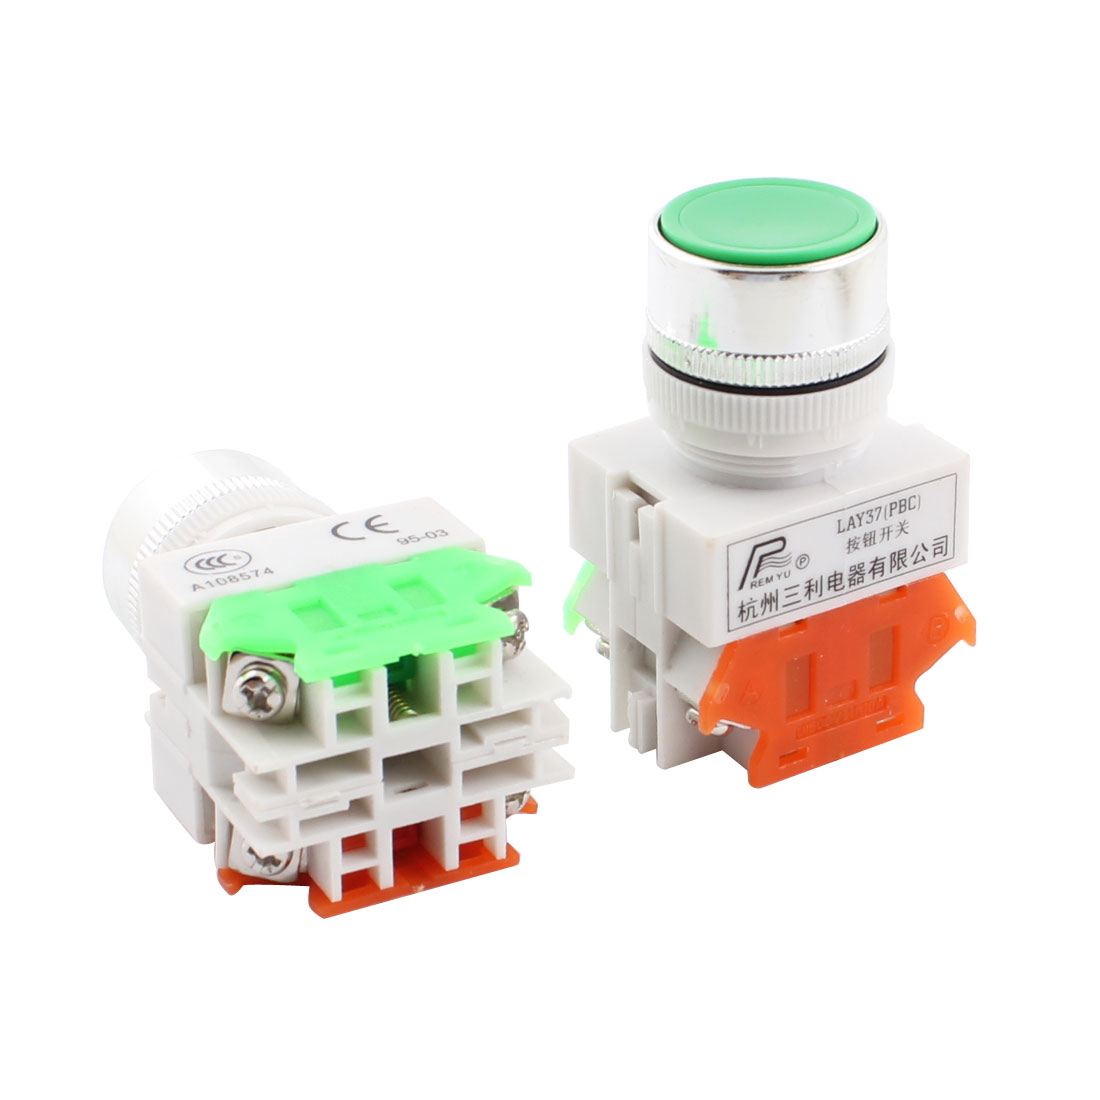 2Pcs LAY37 Green 24mm Panel Cut Dia 4 Terminals SPDT Momentary Push Button Switch Ui 600V Ith 10A